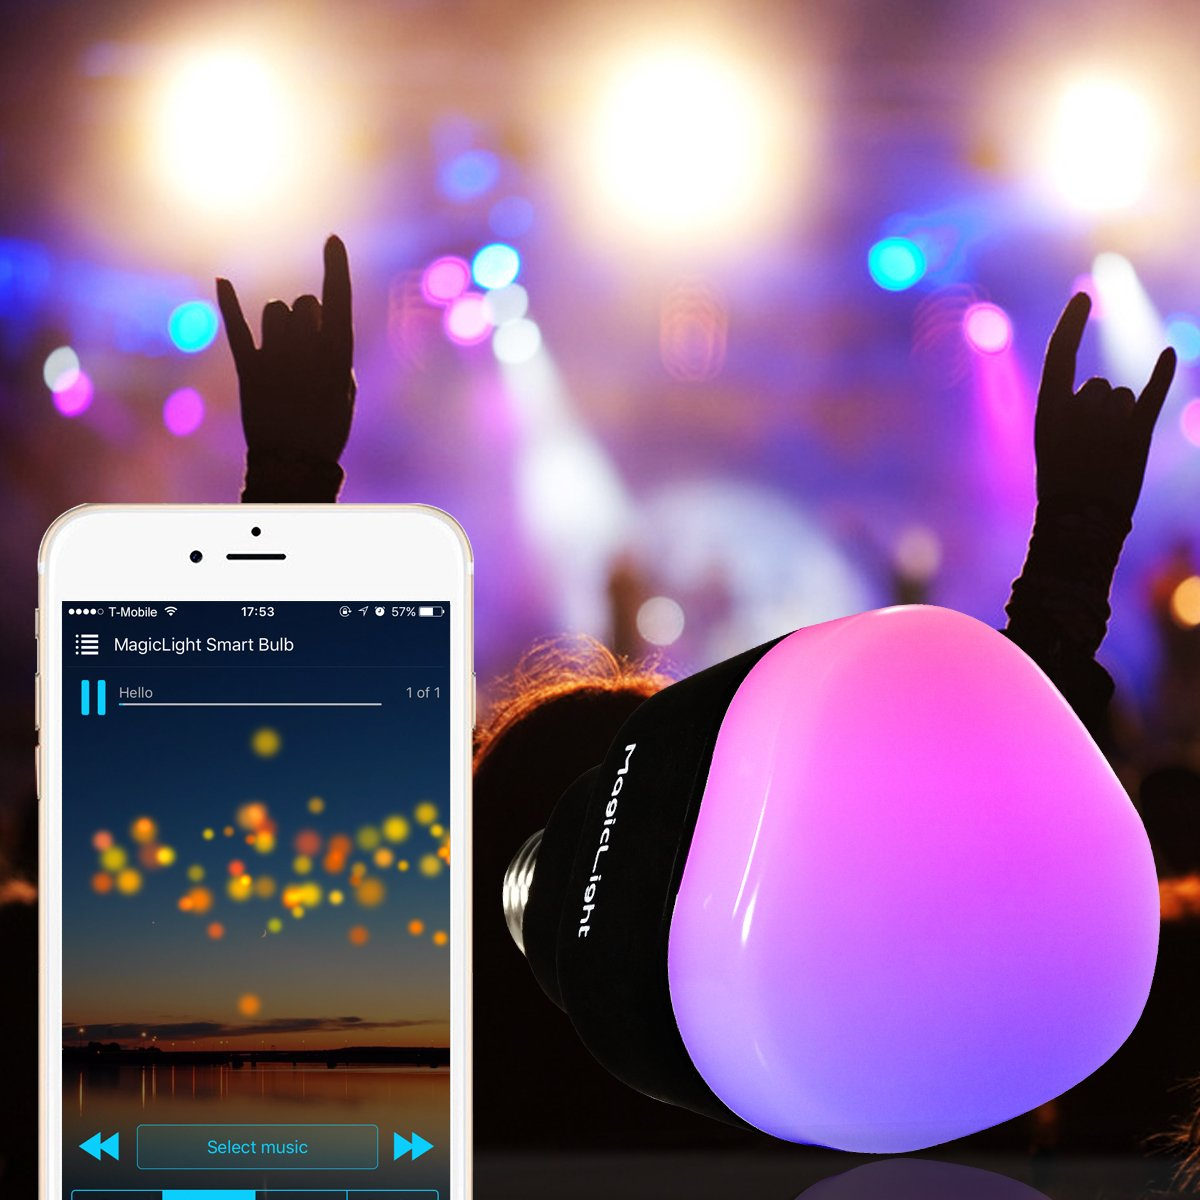 MagicLight WiFi Smart Light Bulb - Triangle Style - Dimmable Multicolored 60w Equivalent Sunset Sunrise Sleeping Night Lights - Compatible with Alexa & Google Home Assistant by MagicLight (Image #4)